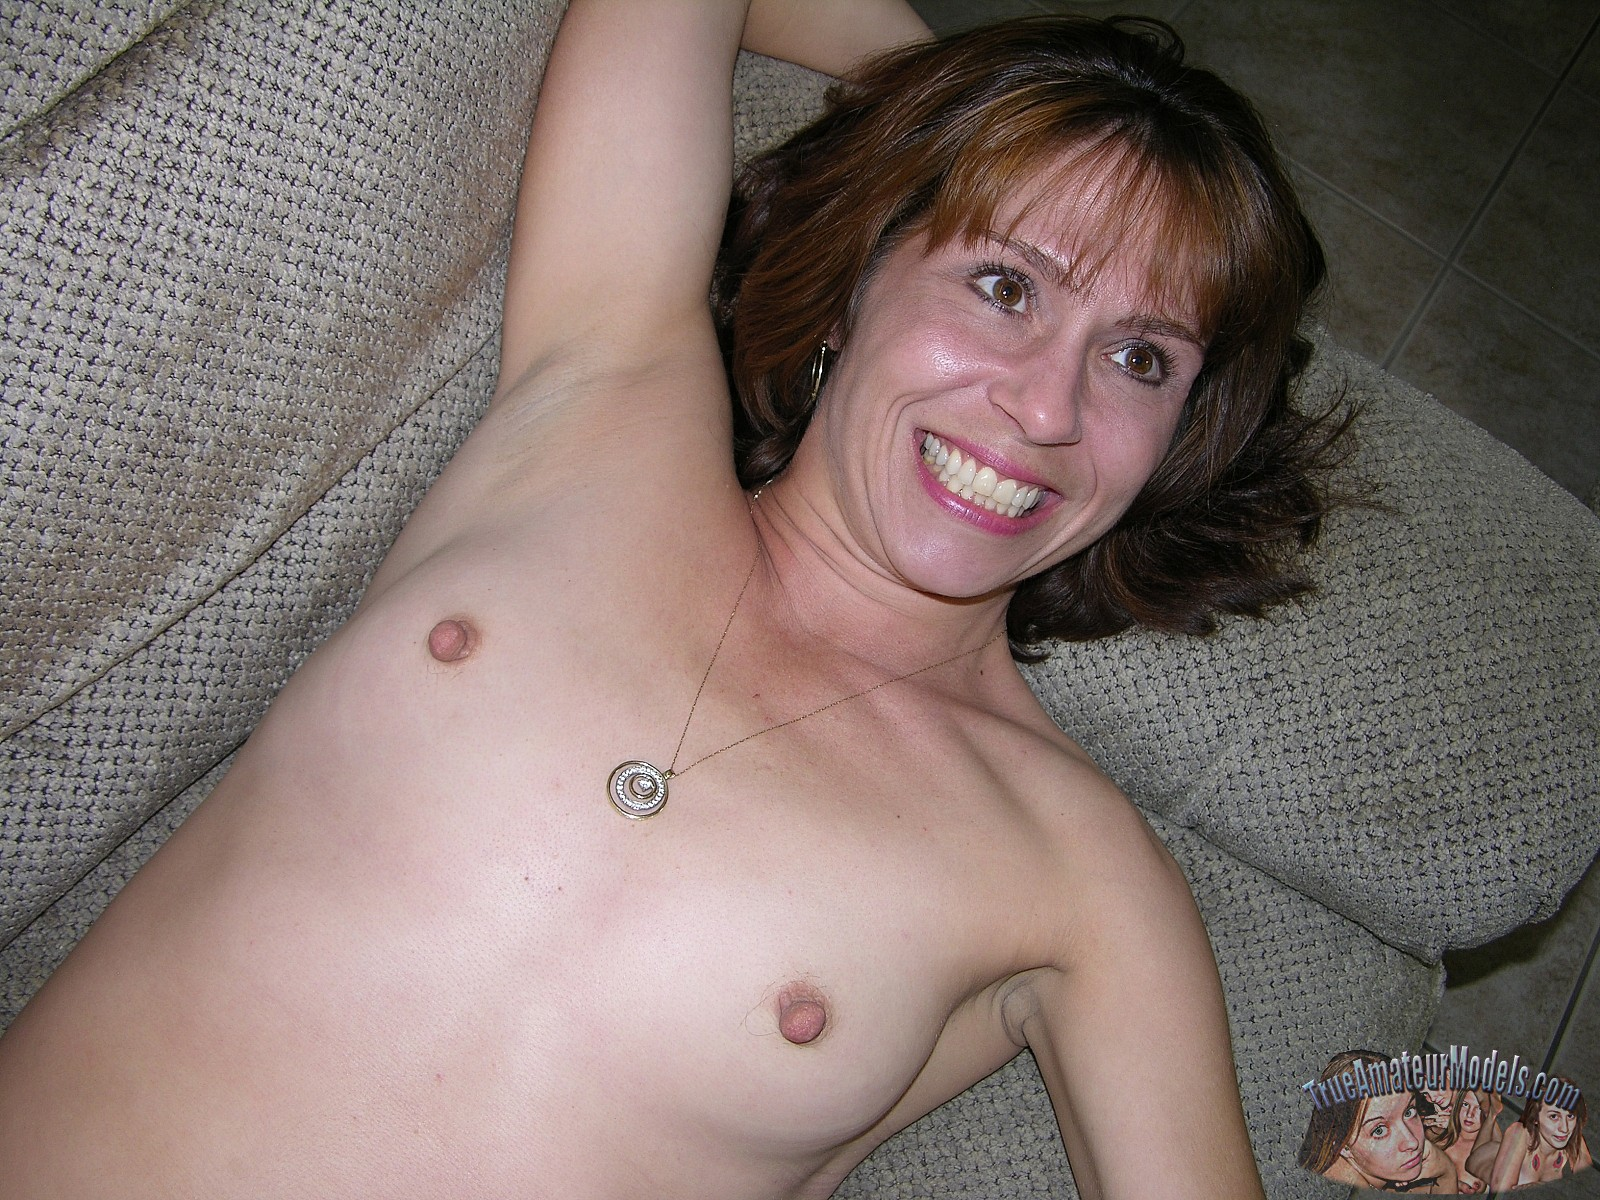 Consider, Real life nude milf version